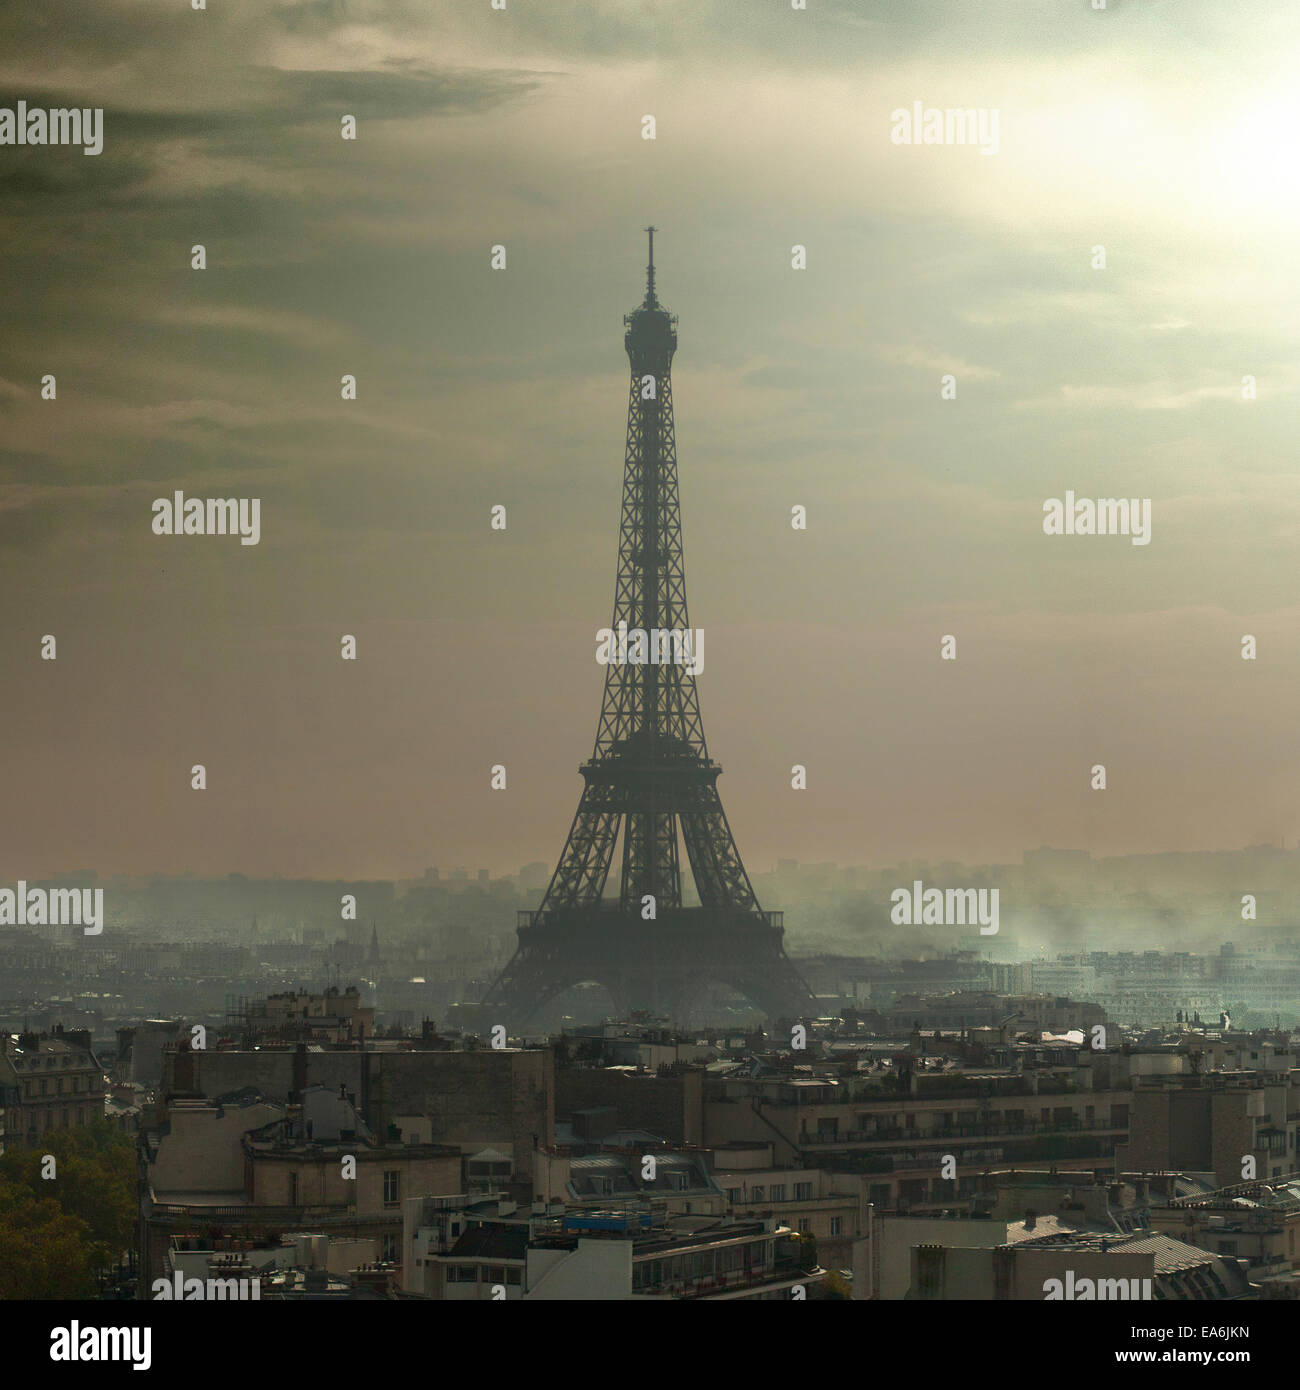 France, Paris, Eiffel Tower in the smog - Stock Image